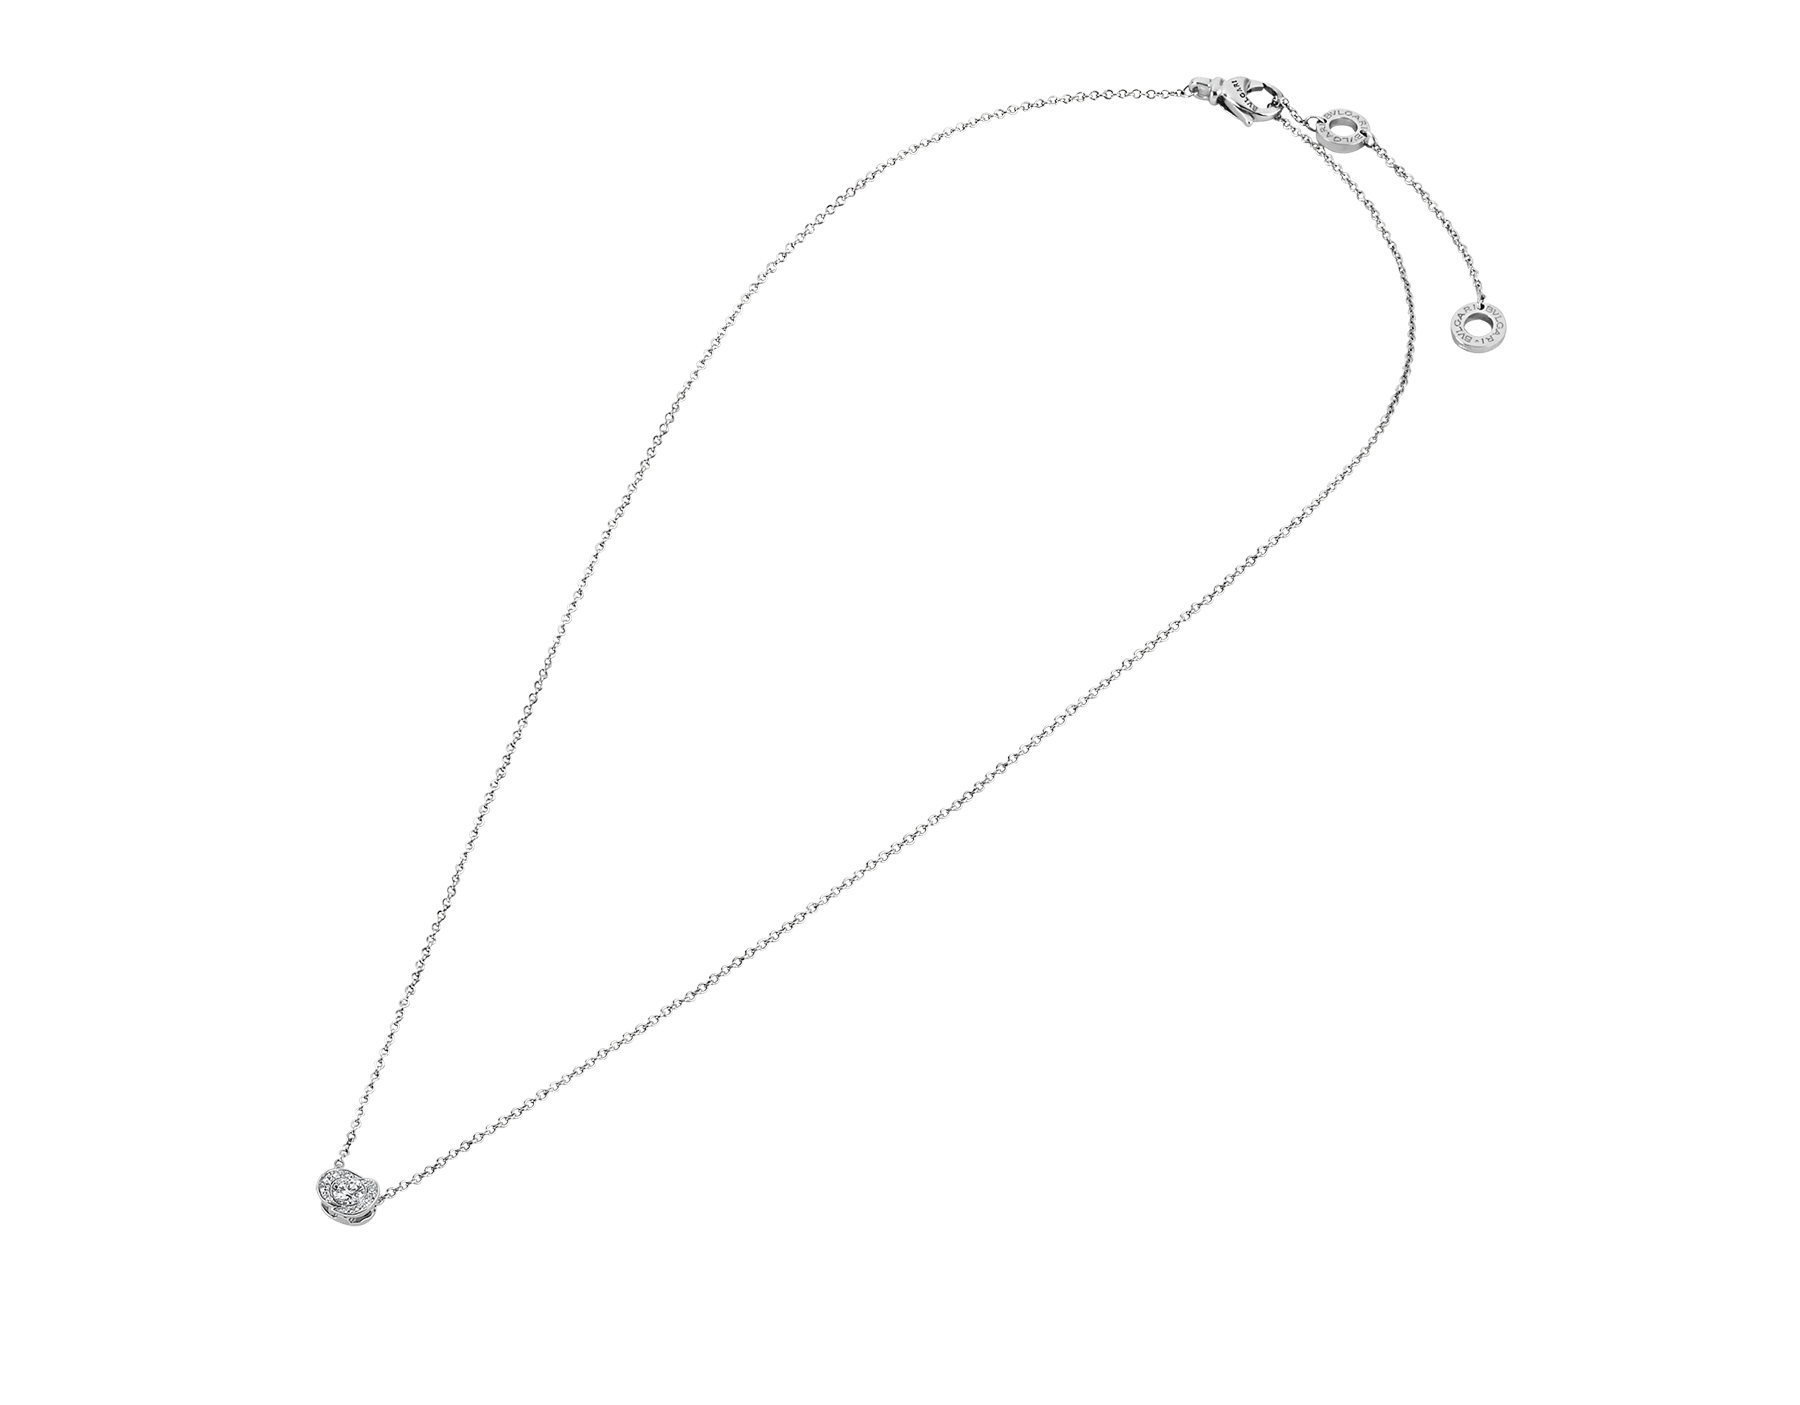 Incontro d'Amore necklace with 18 kt white gold chain, 18 kt white gold pendant set with a central diamond (0.10 ct) and pavé diamonds. 355249 image 2